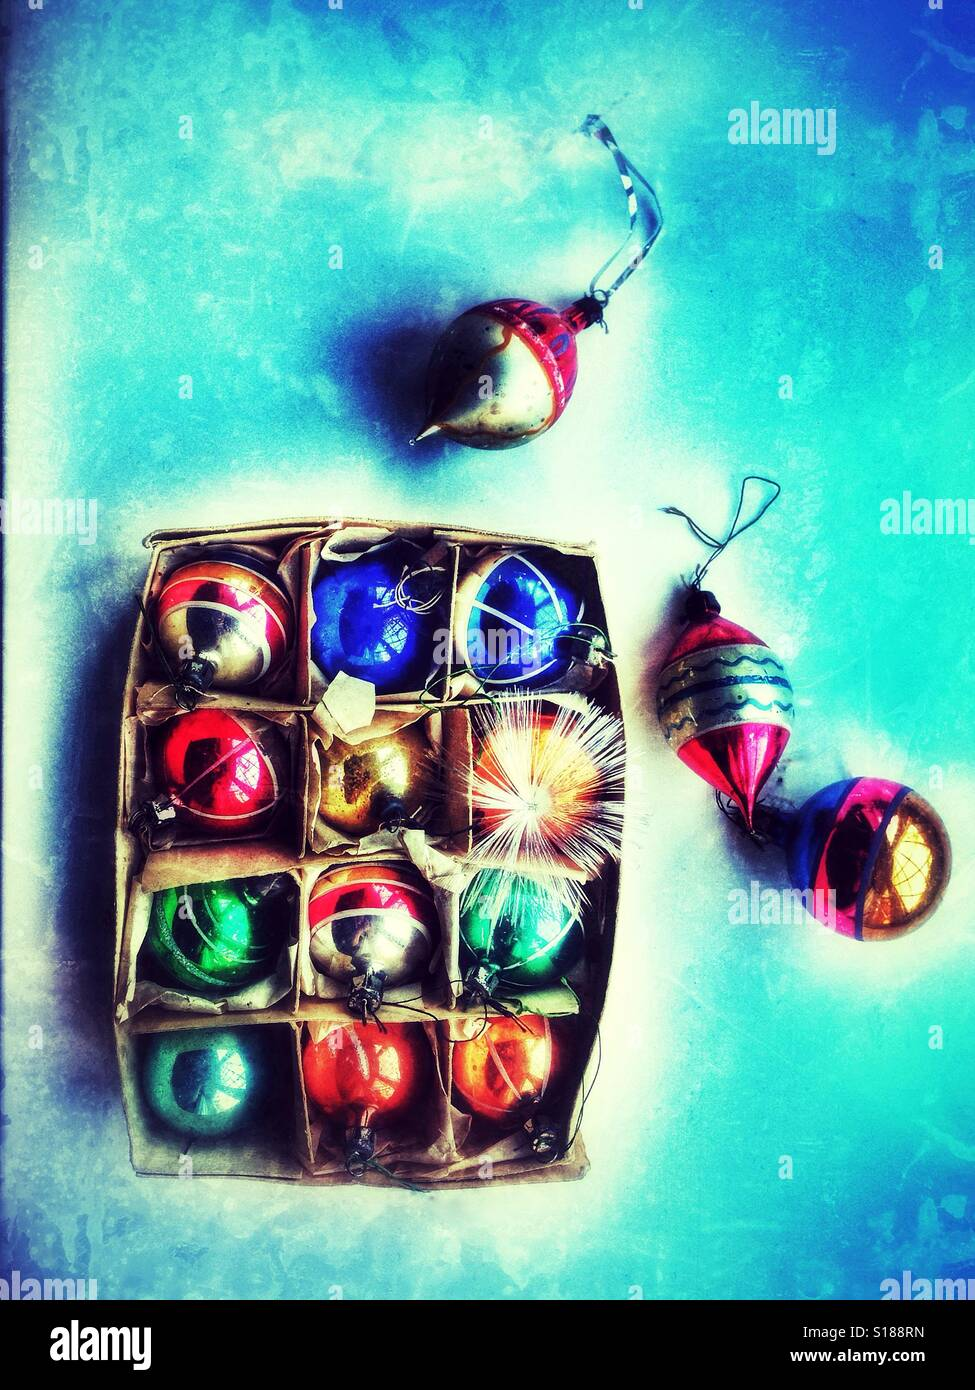 Vintage Christmas tree baubles seen from above. Stock Photo